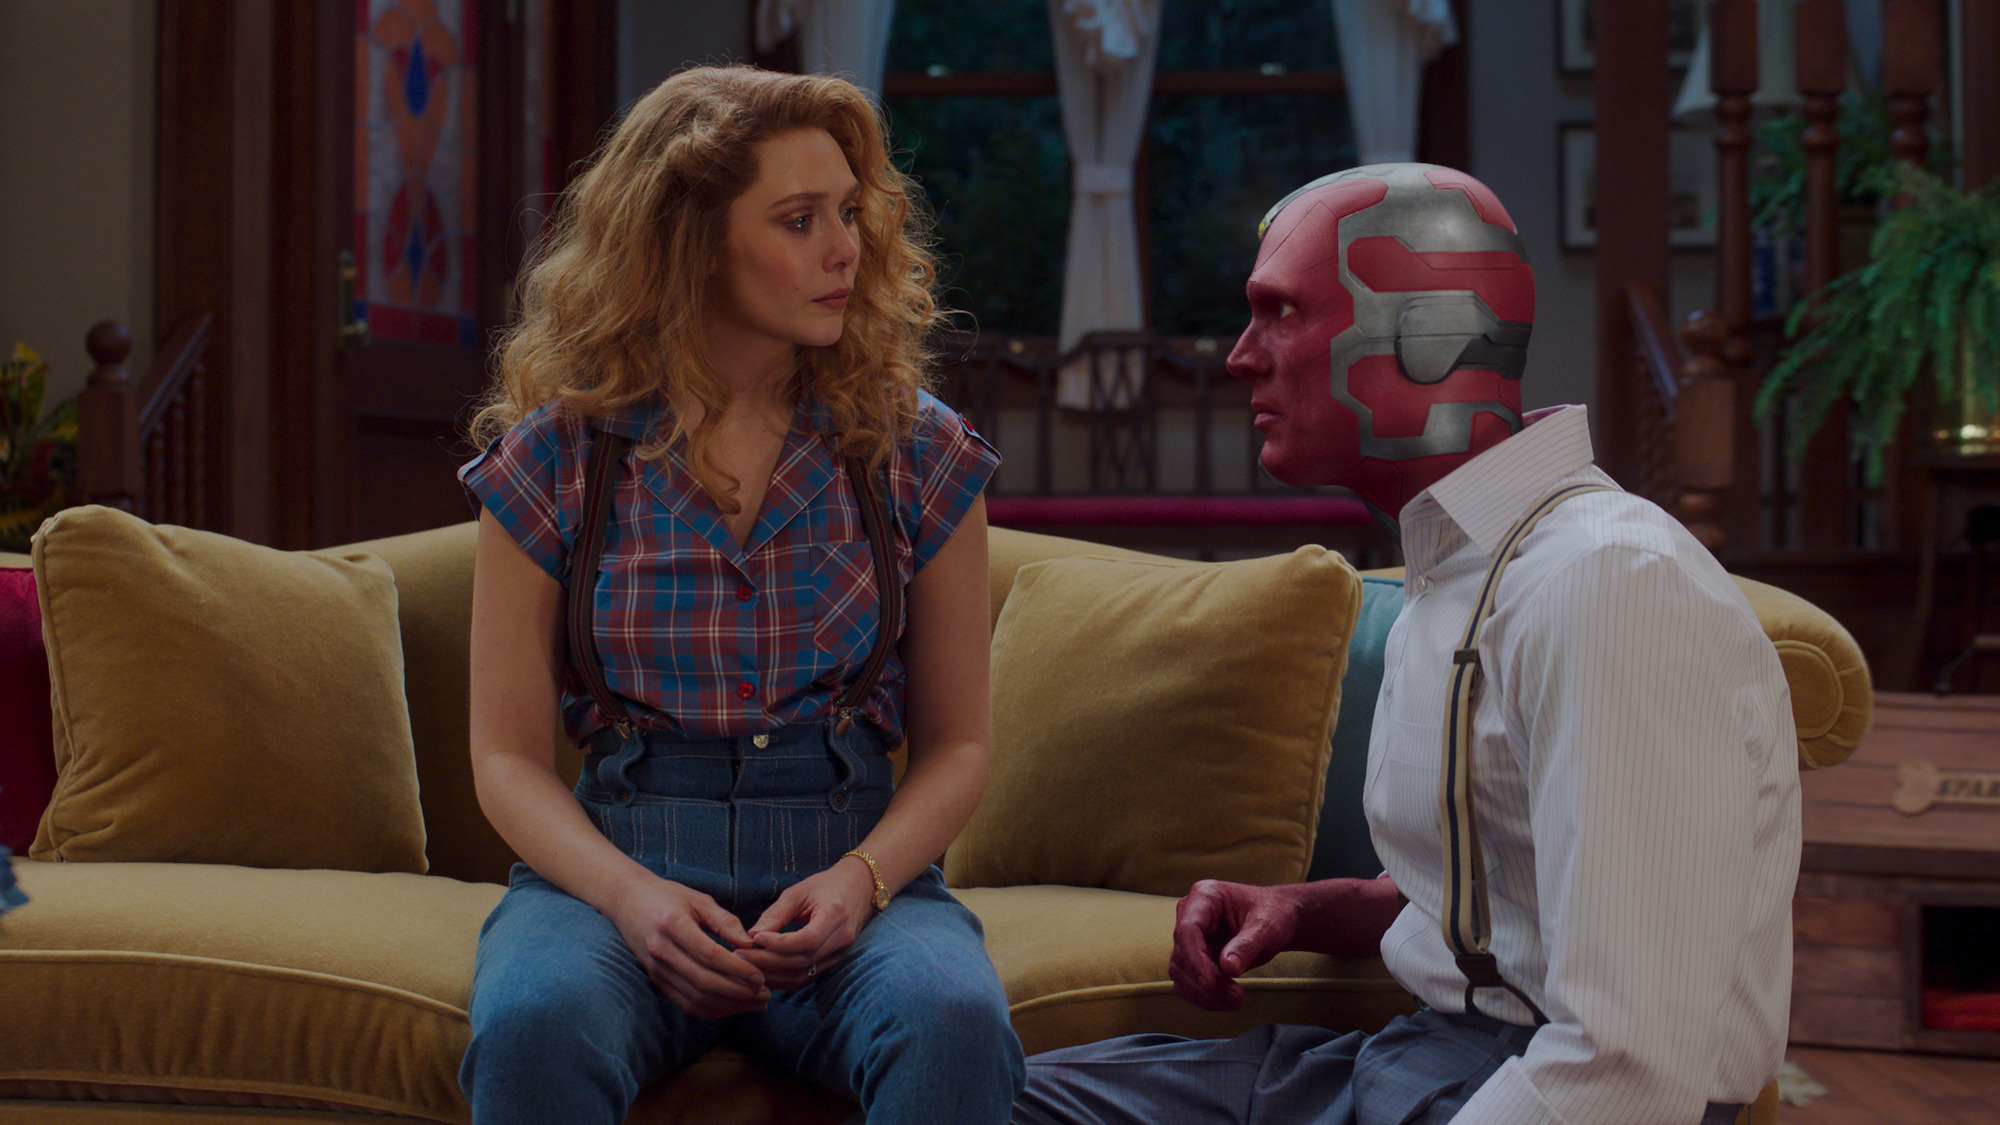 Elizabeth Olsen as Wanda and Paul Bettany as Vision in their '80s decade of 'WandaVision'